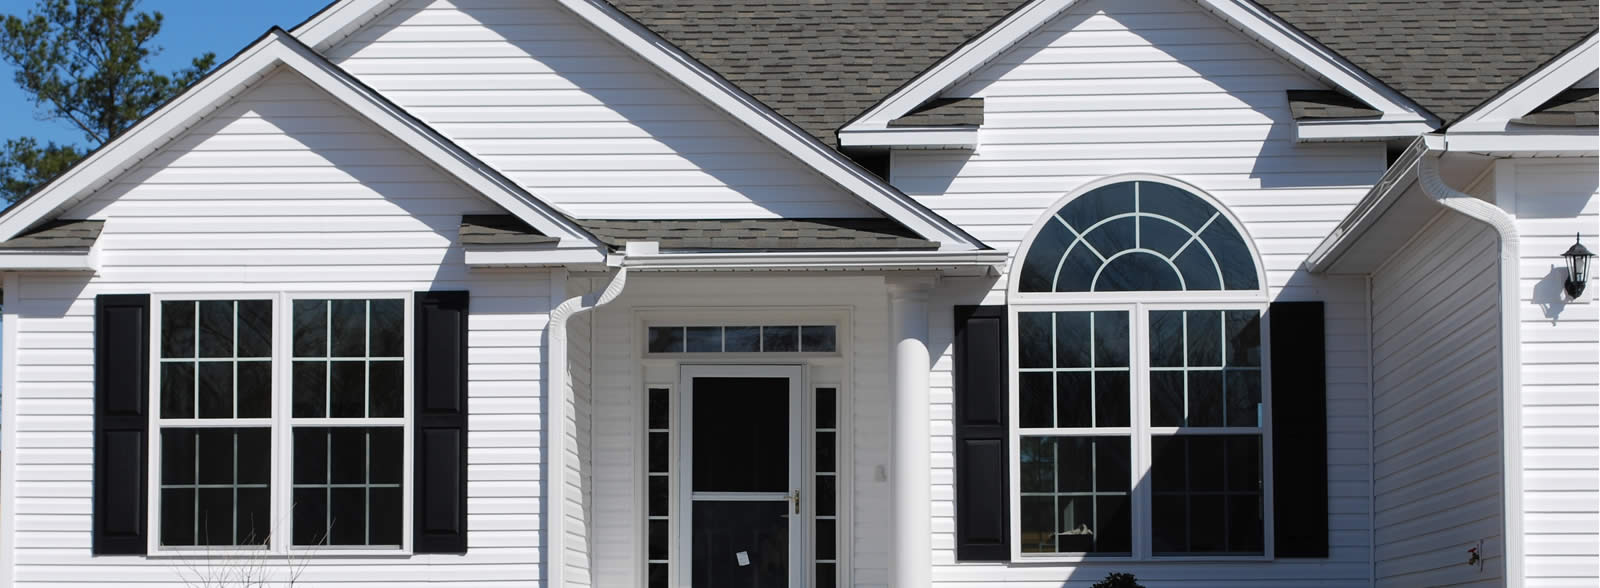 Vinyl Siding Repair Charlotte Nc Contractors